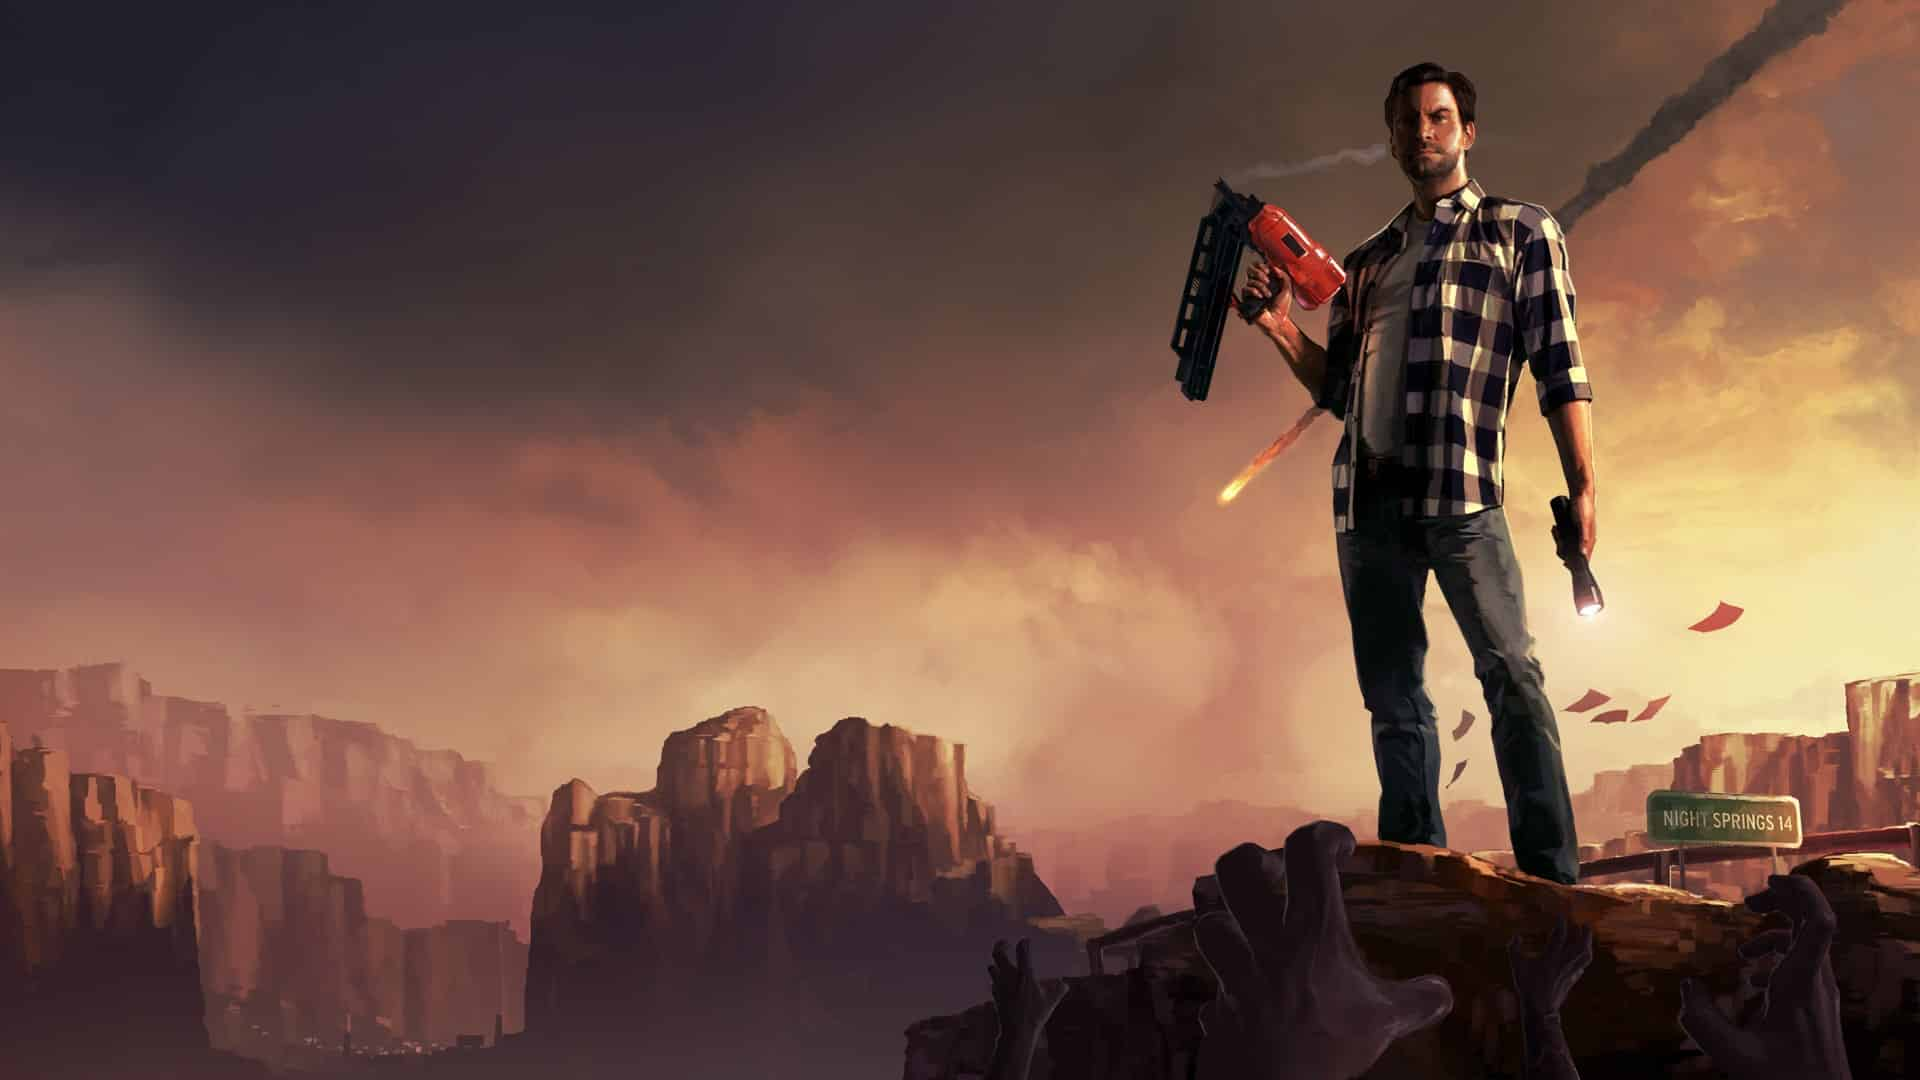 free games Epic Games Store Alan Wake: American Nightmare Observer Remedy Entertainment